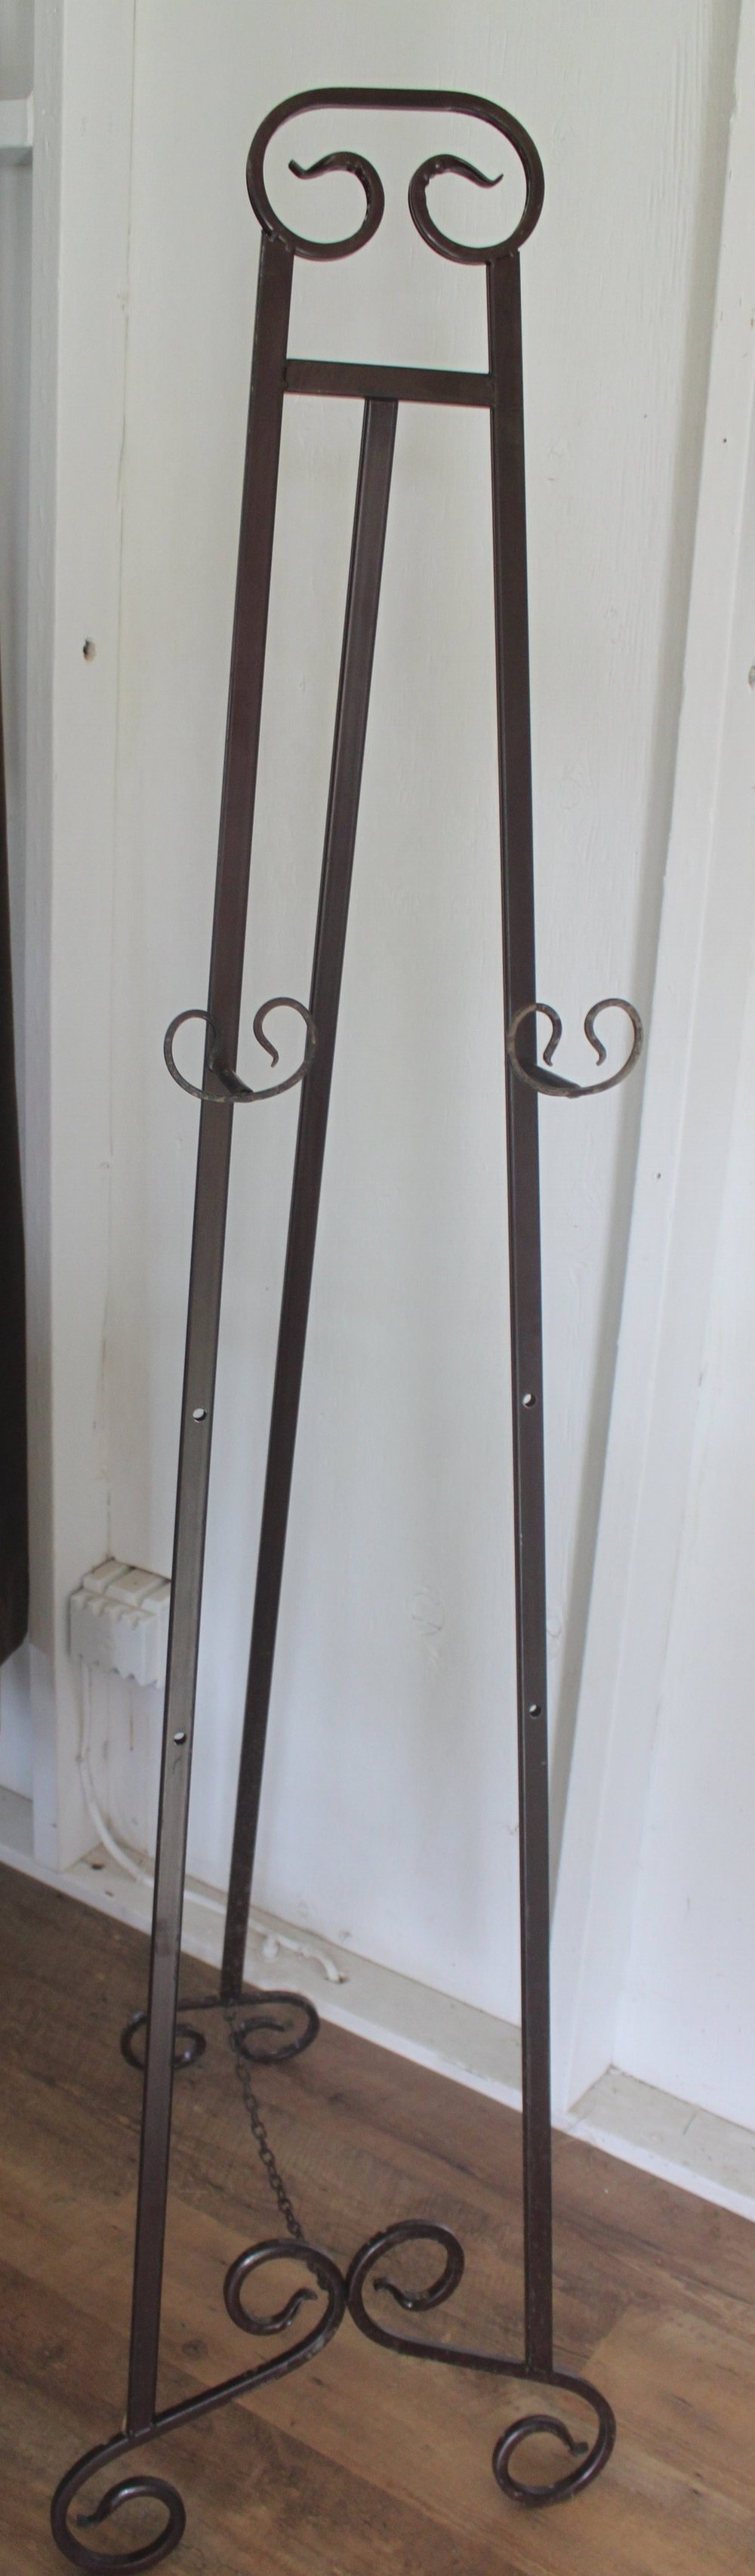 Scroll Floor Easel $15/ea.